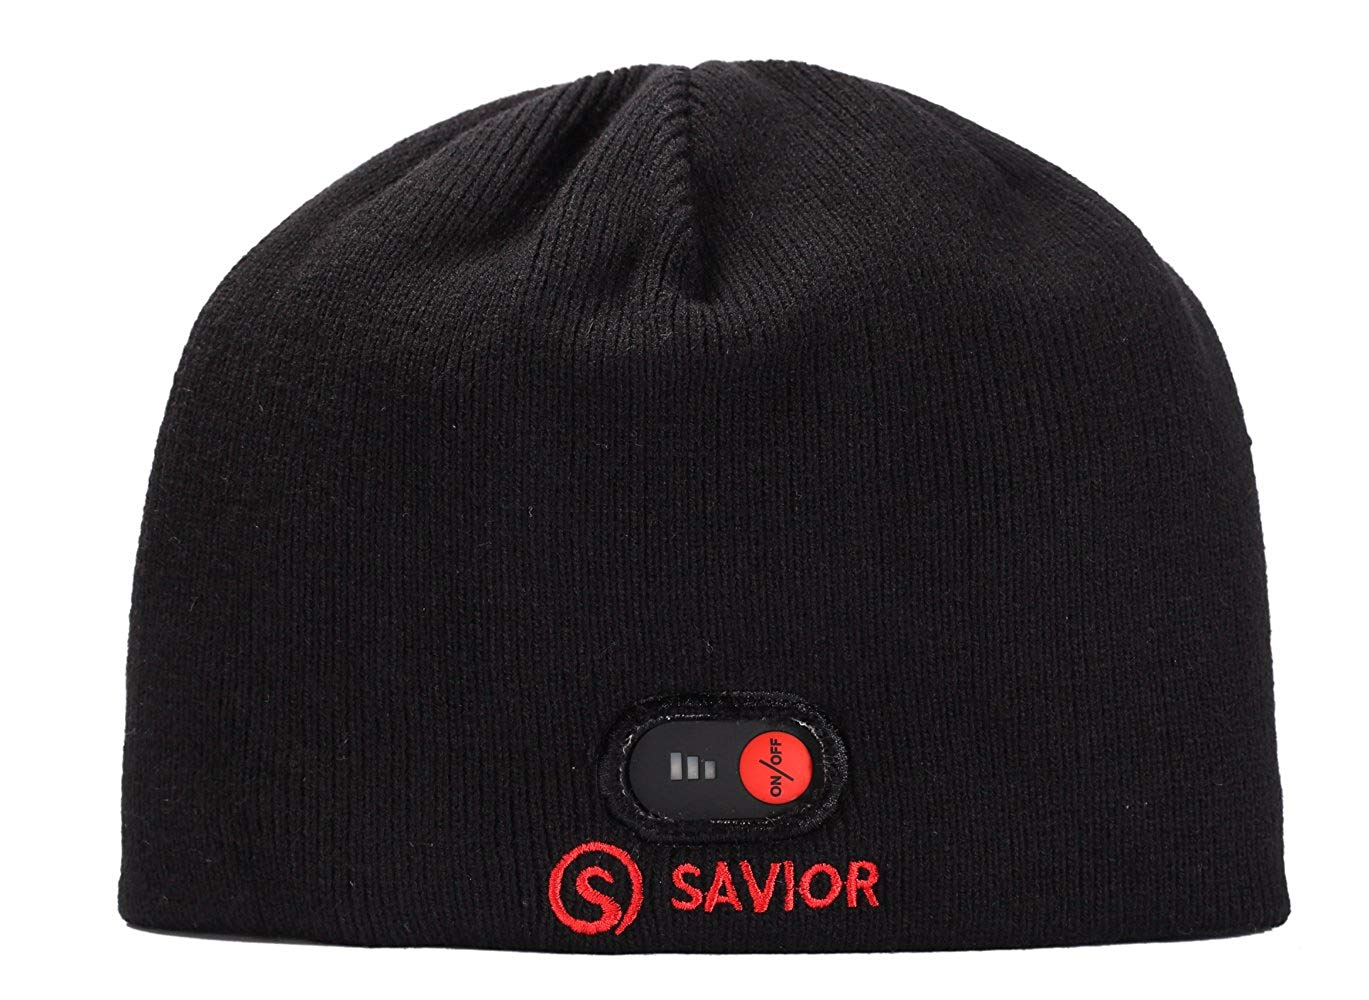 Savior Heat Heated Hat